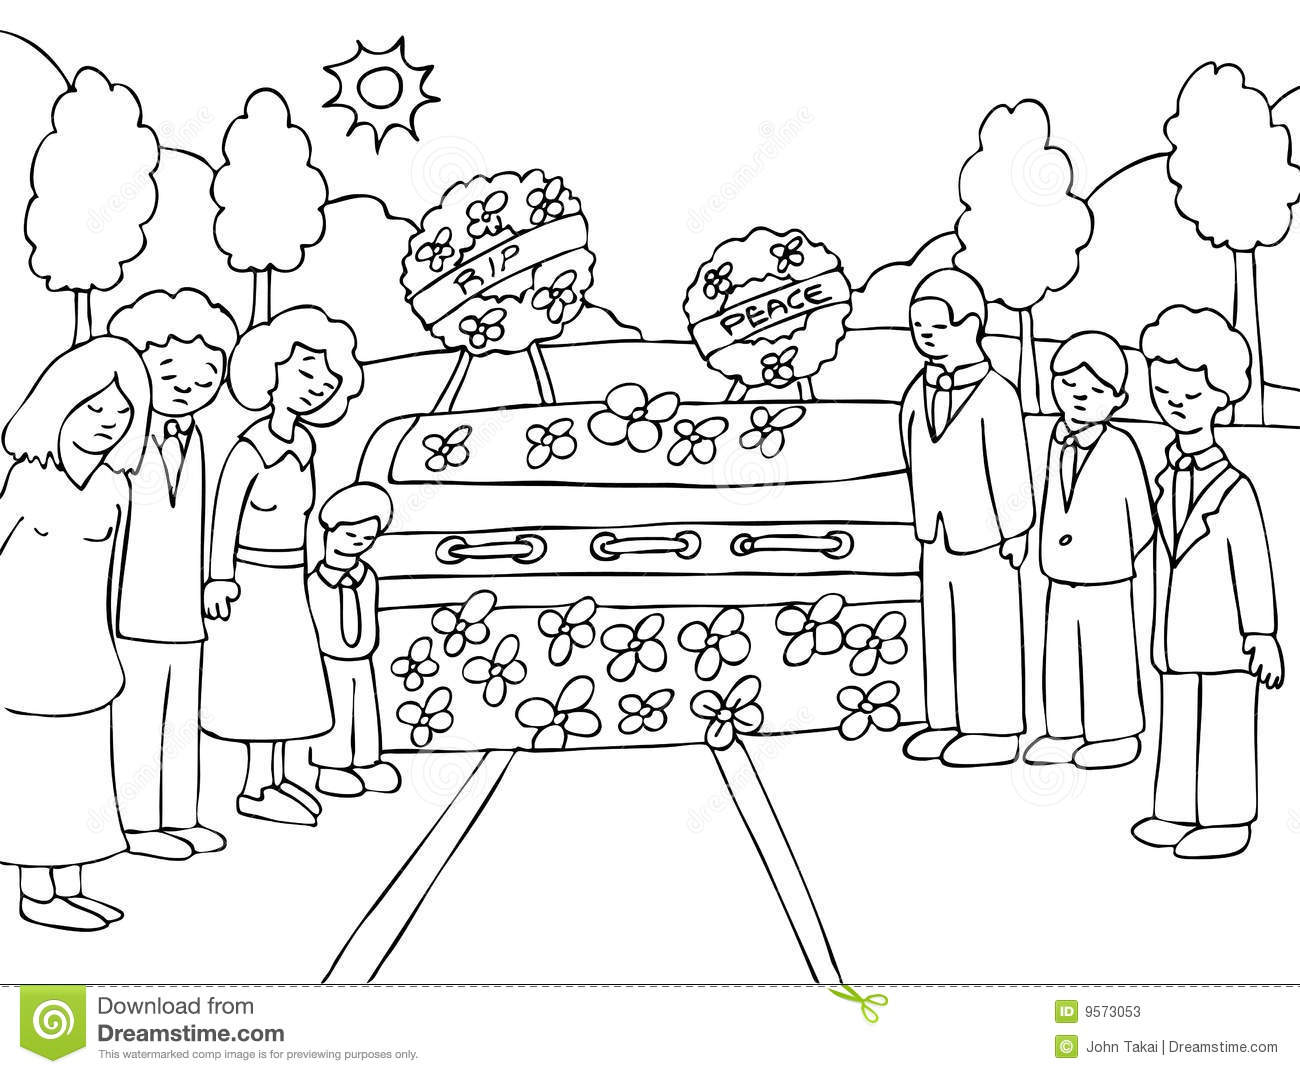 Funeral clipart black and white.